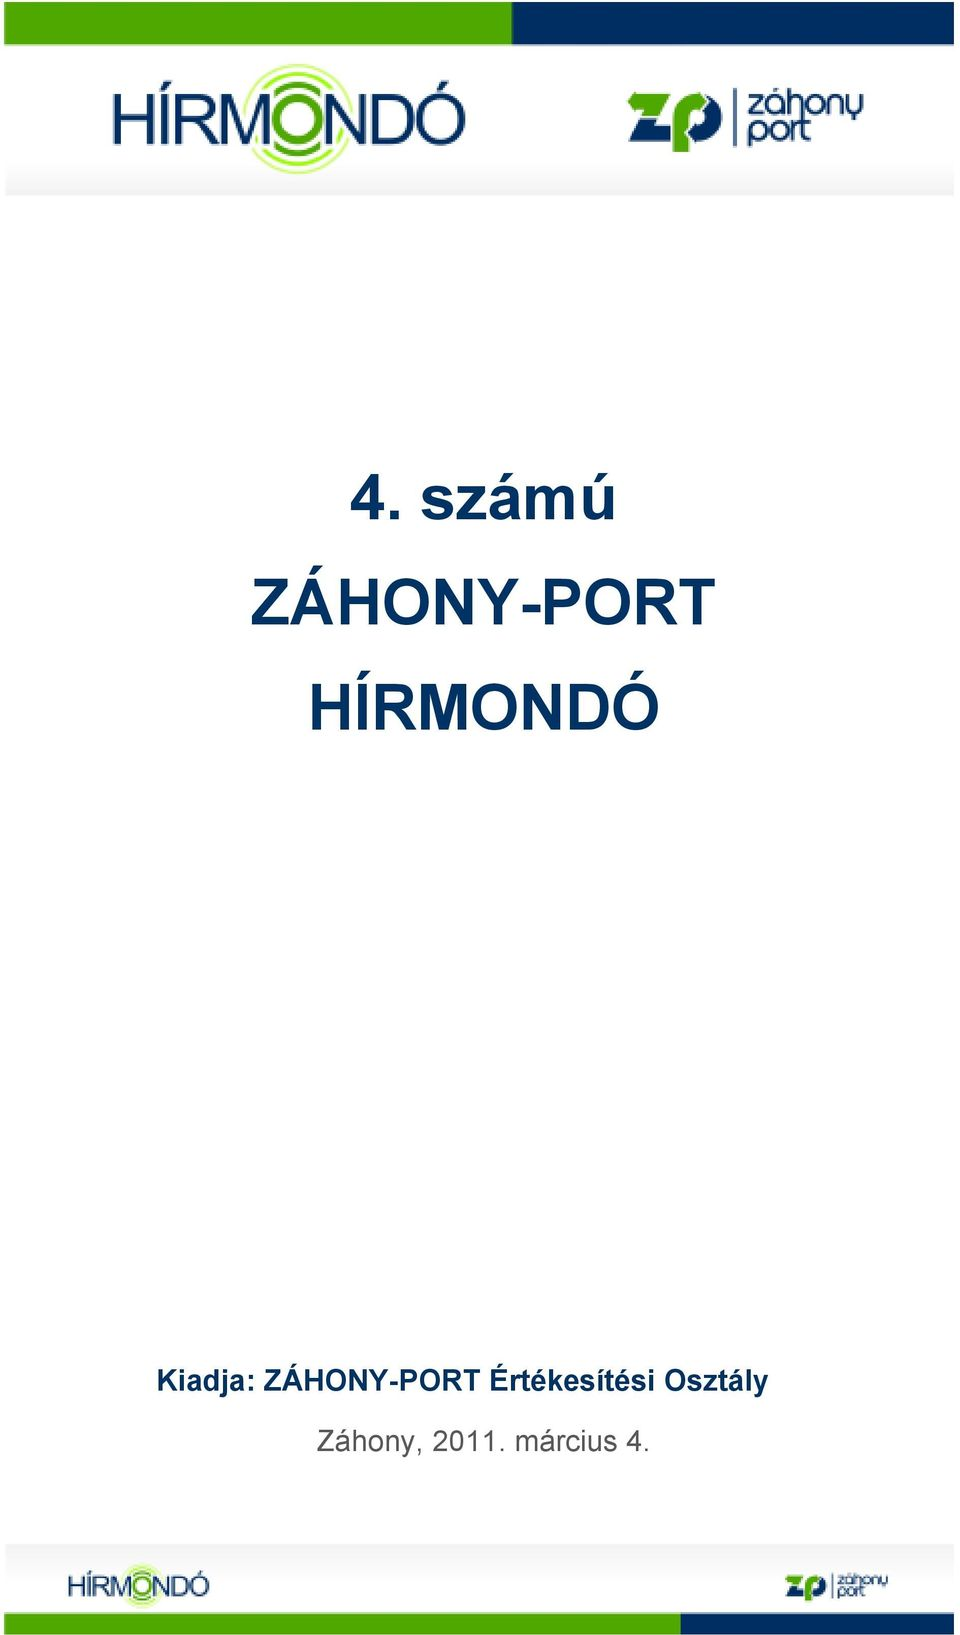 ZÁHONY-PORT